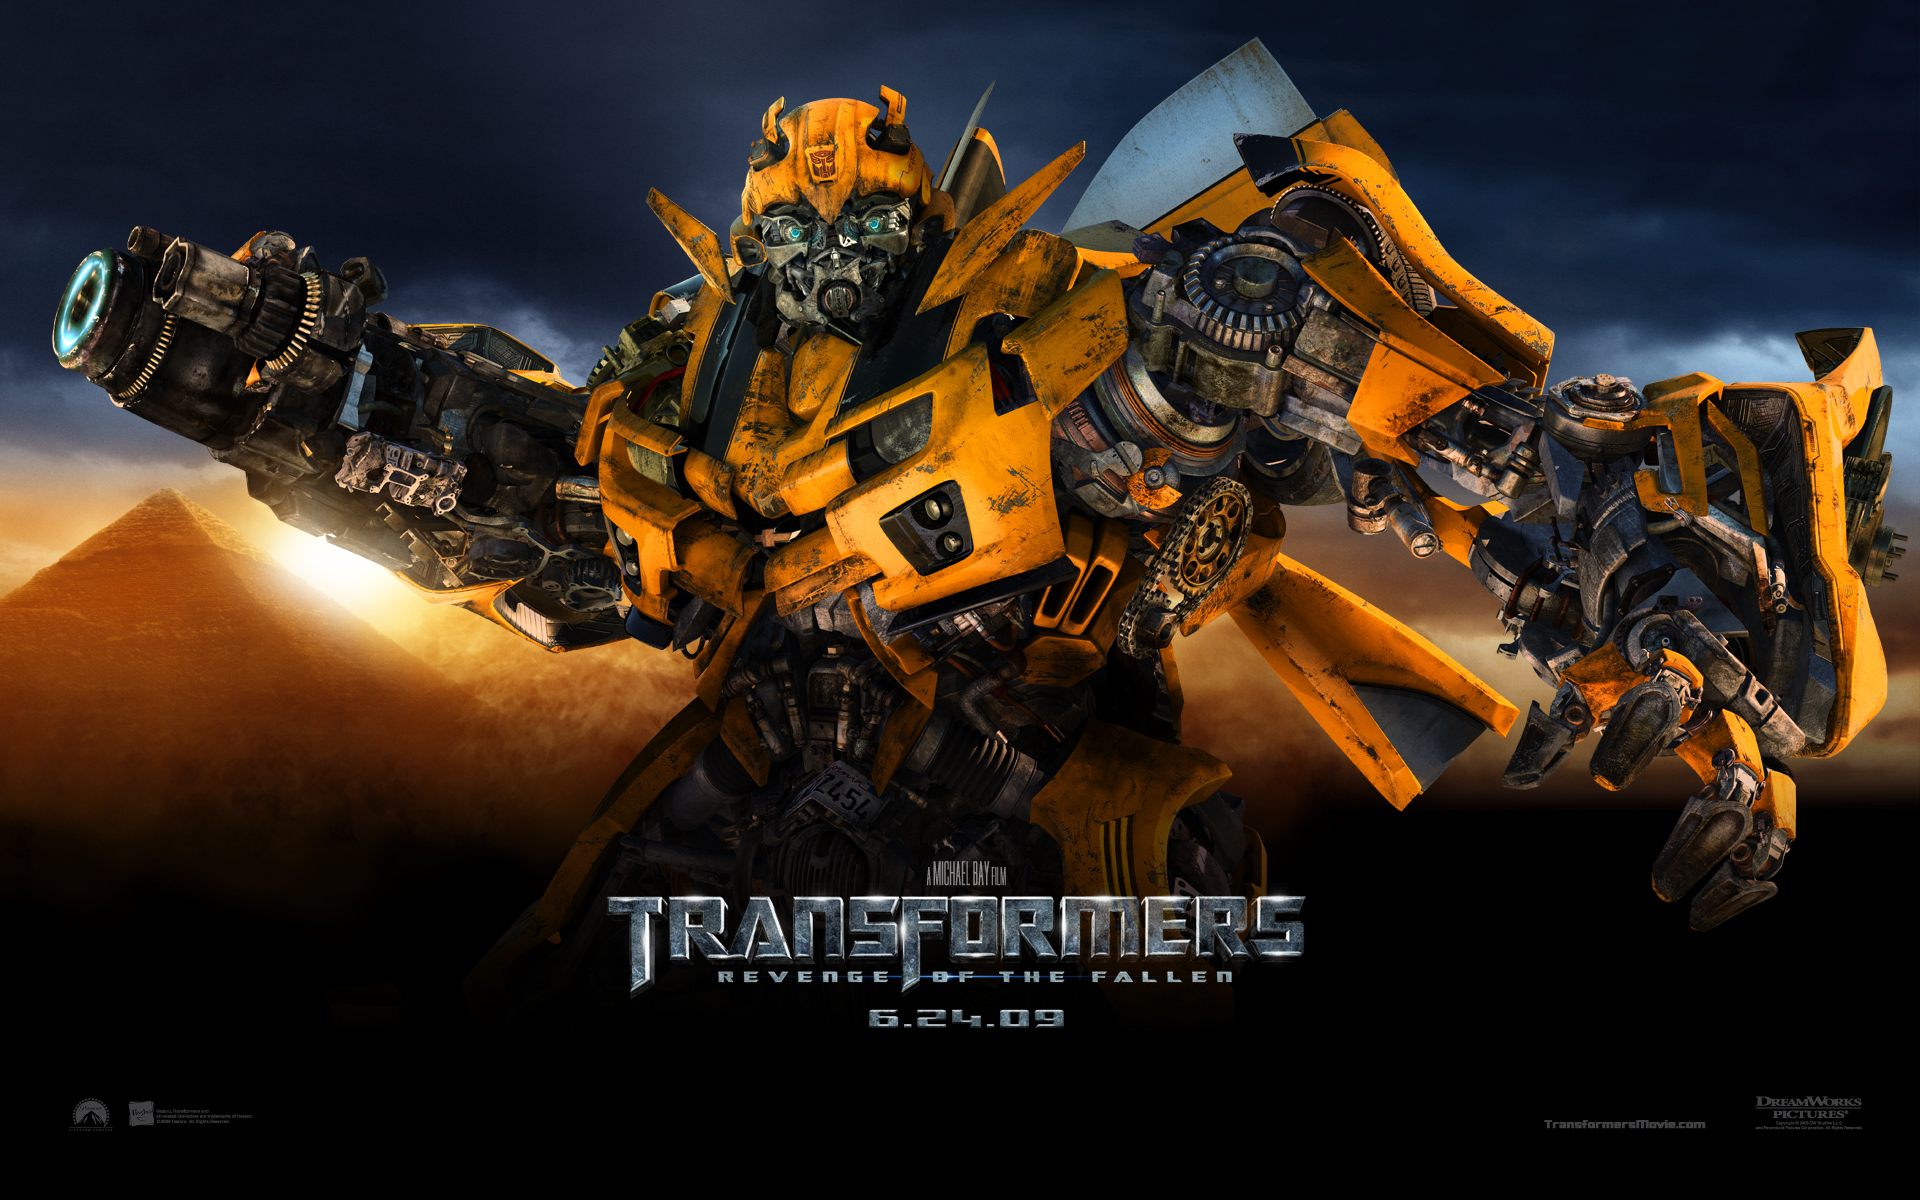 Transformers wallpapers that I have missed be sure to link it in the 1920x1200